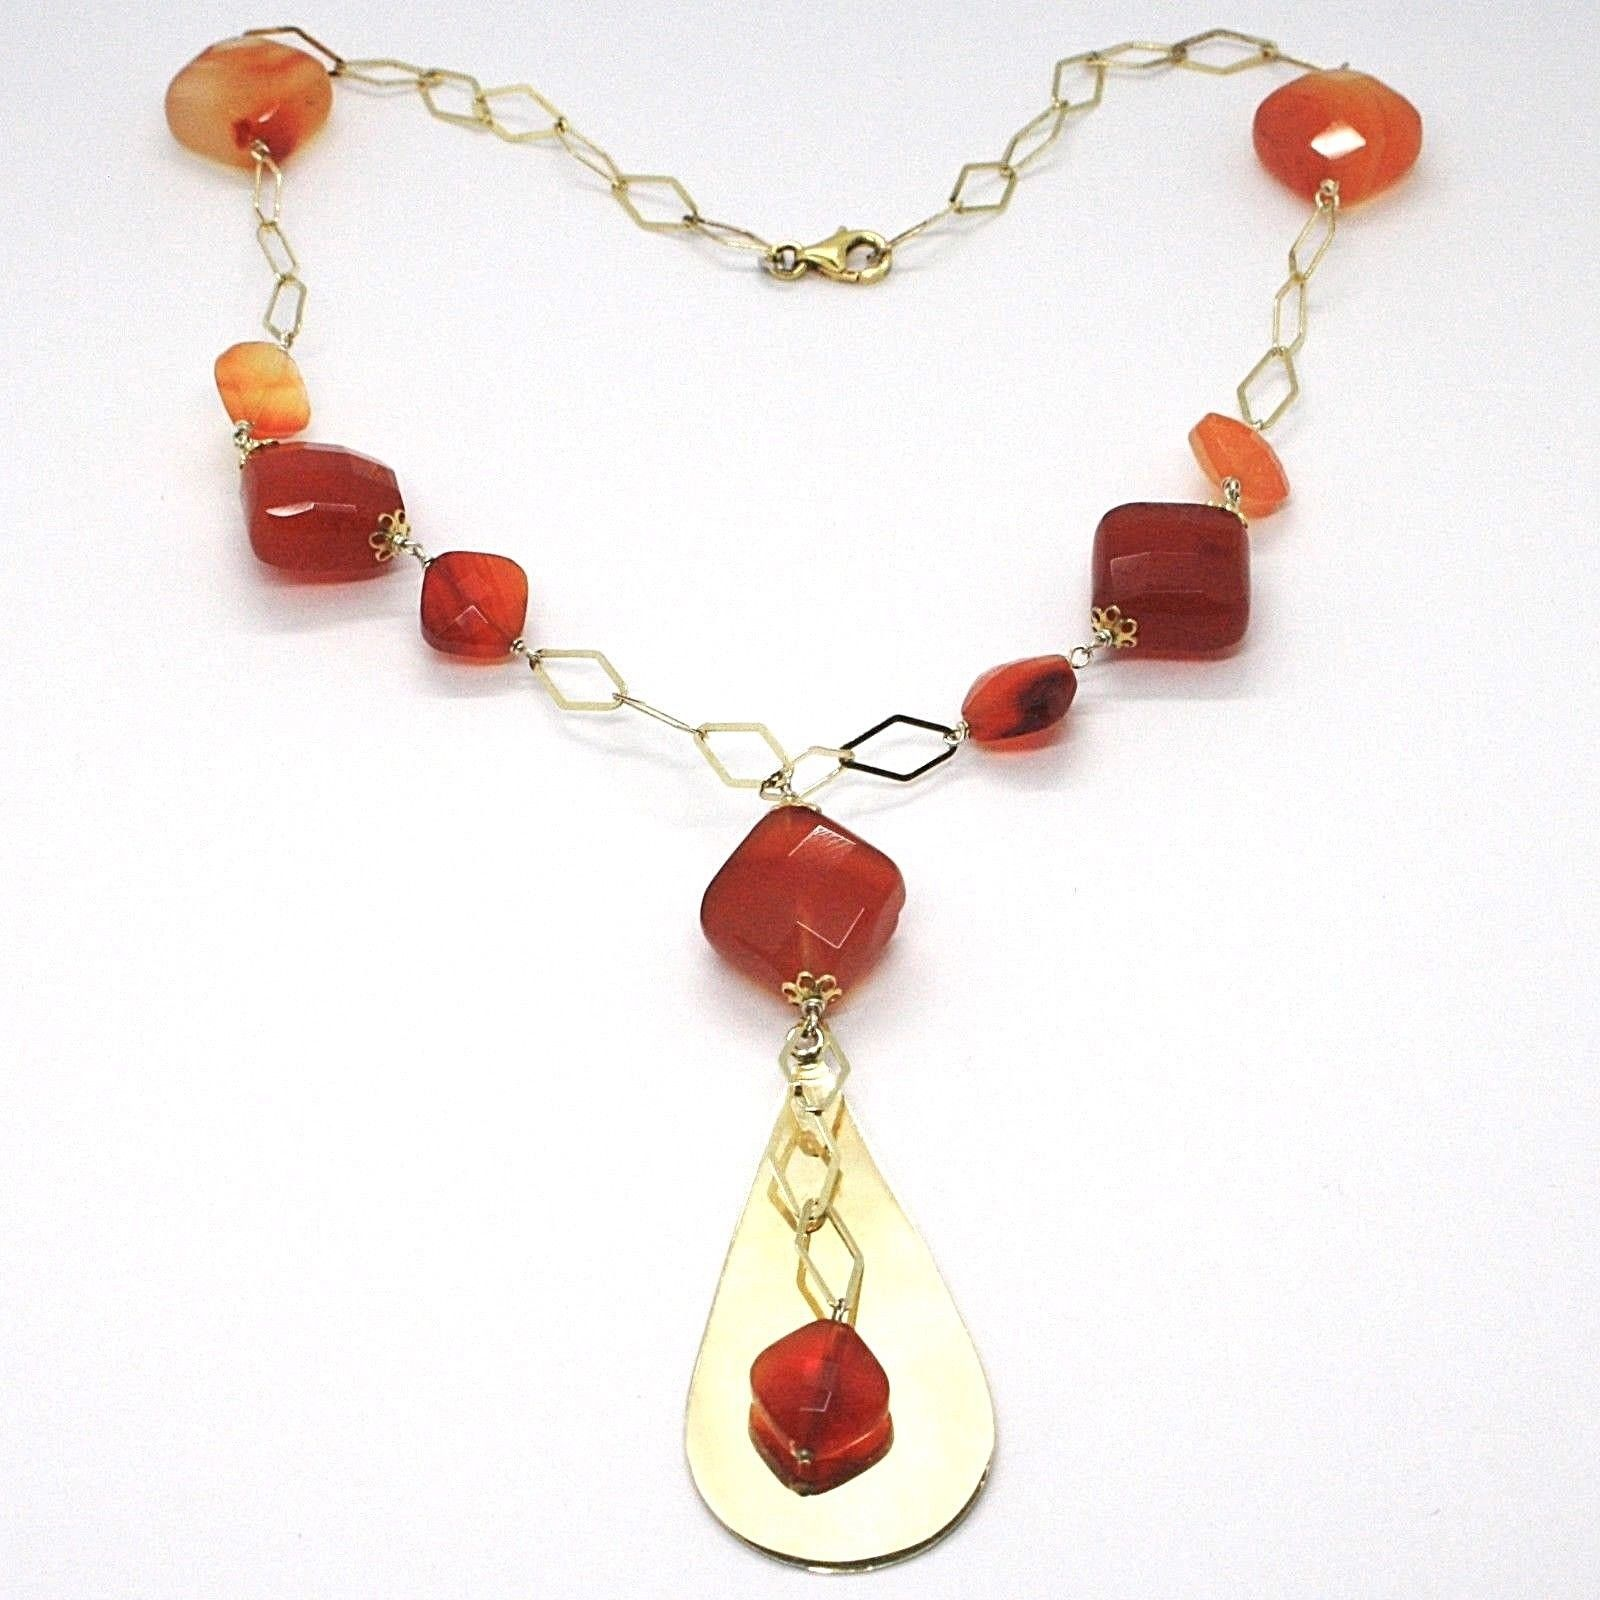 SILVER 925 NECKLACE, YELLOW, AGATE BROWN SQUARED, DROP PENDANT